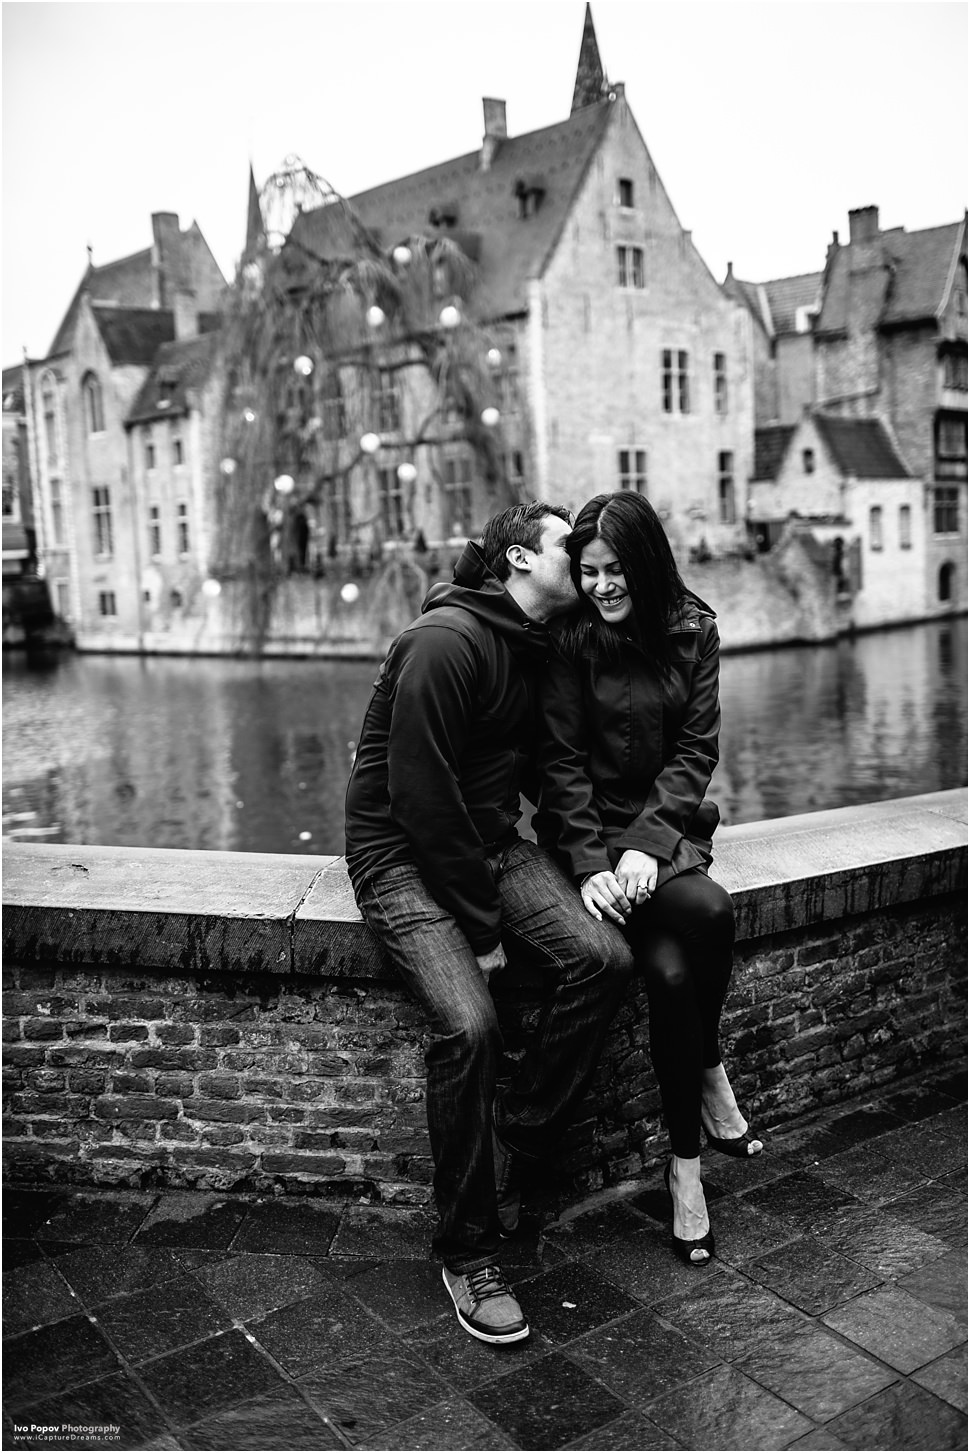 Romantic photo session in Bruges with Ivo Popov Photography